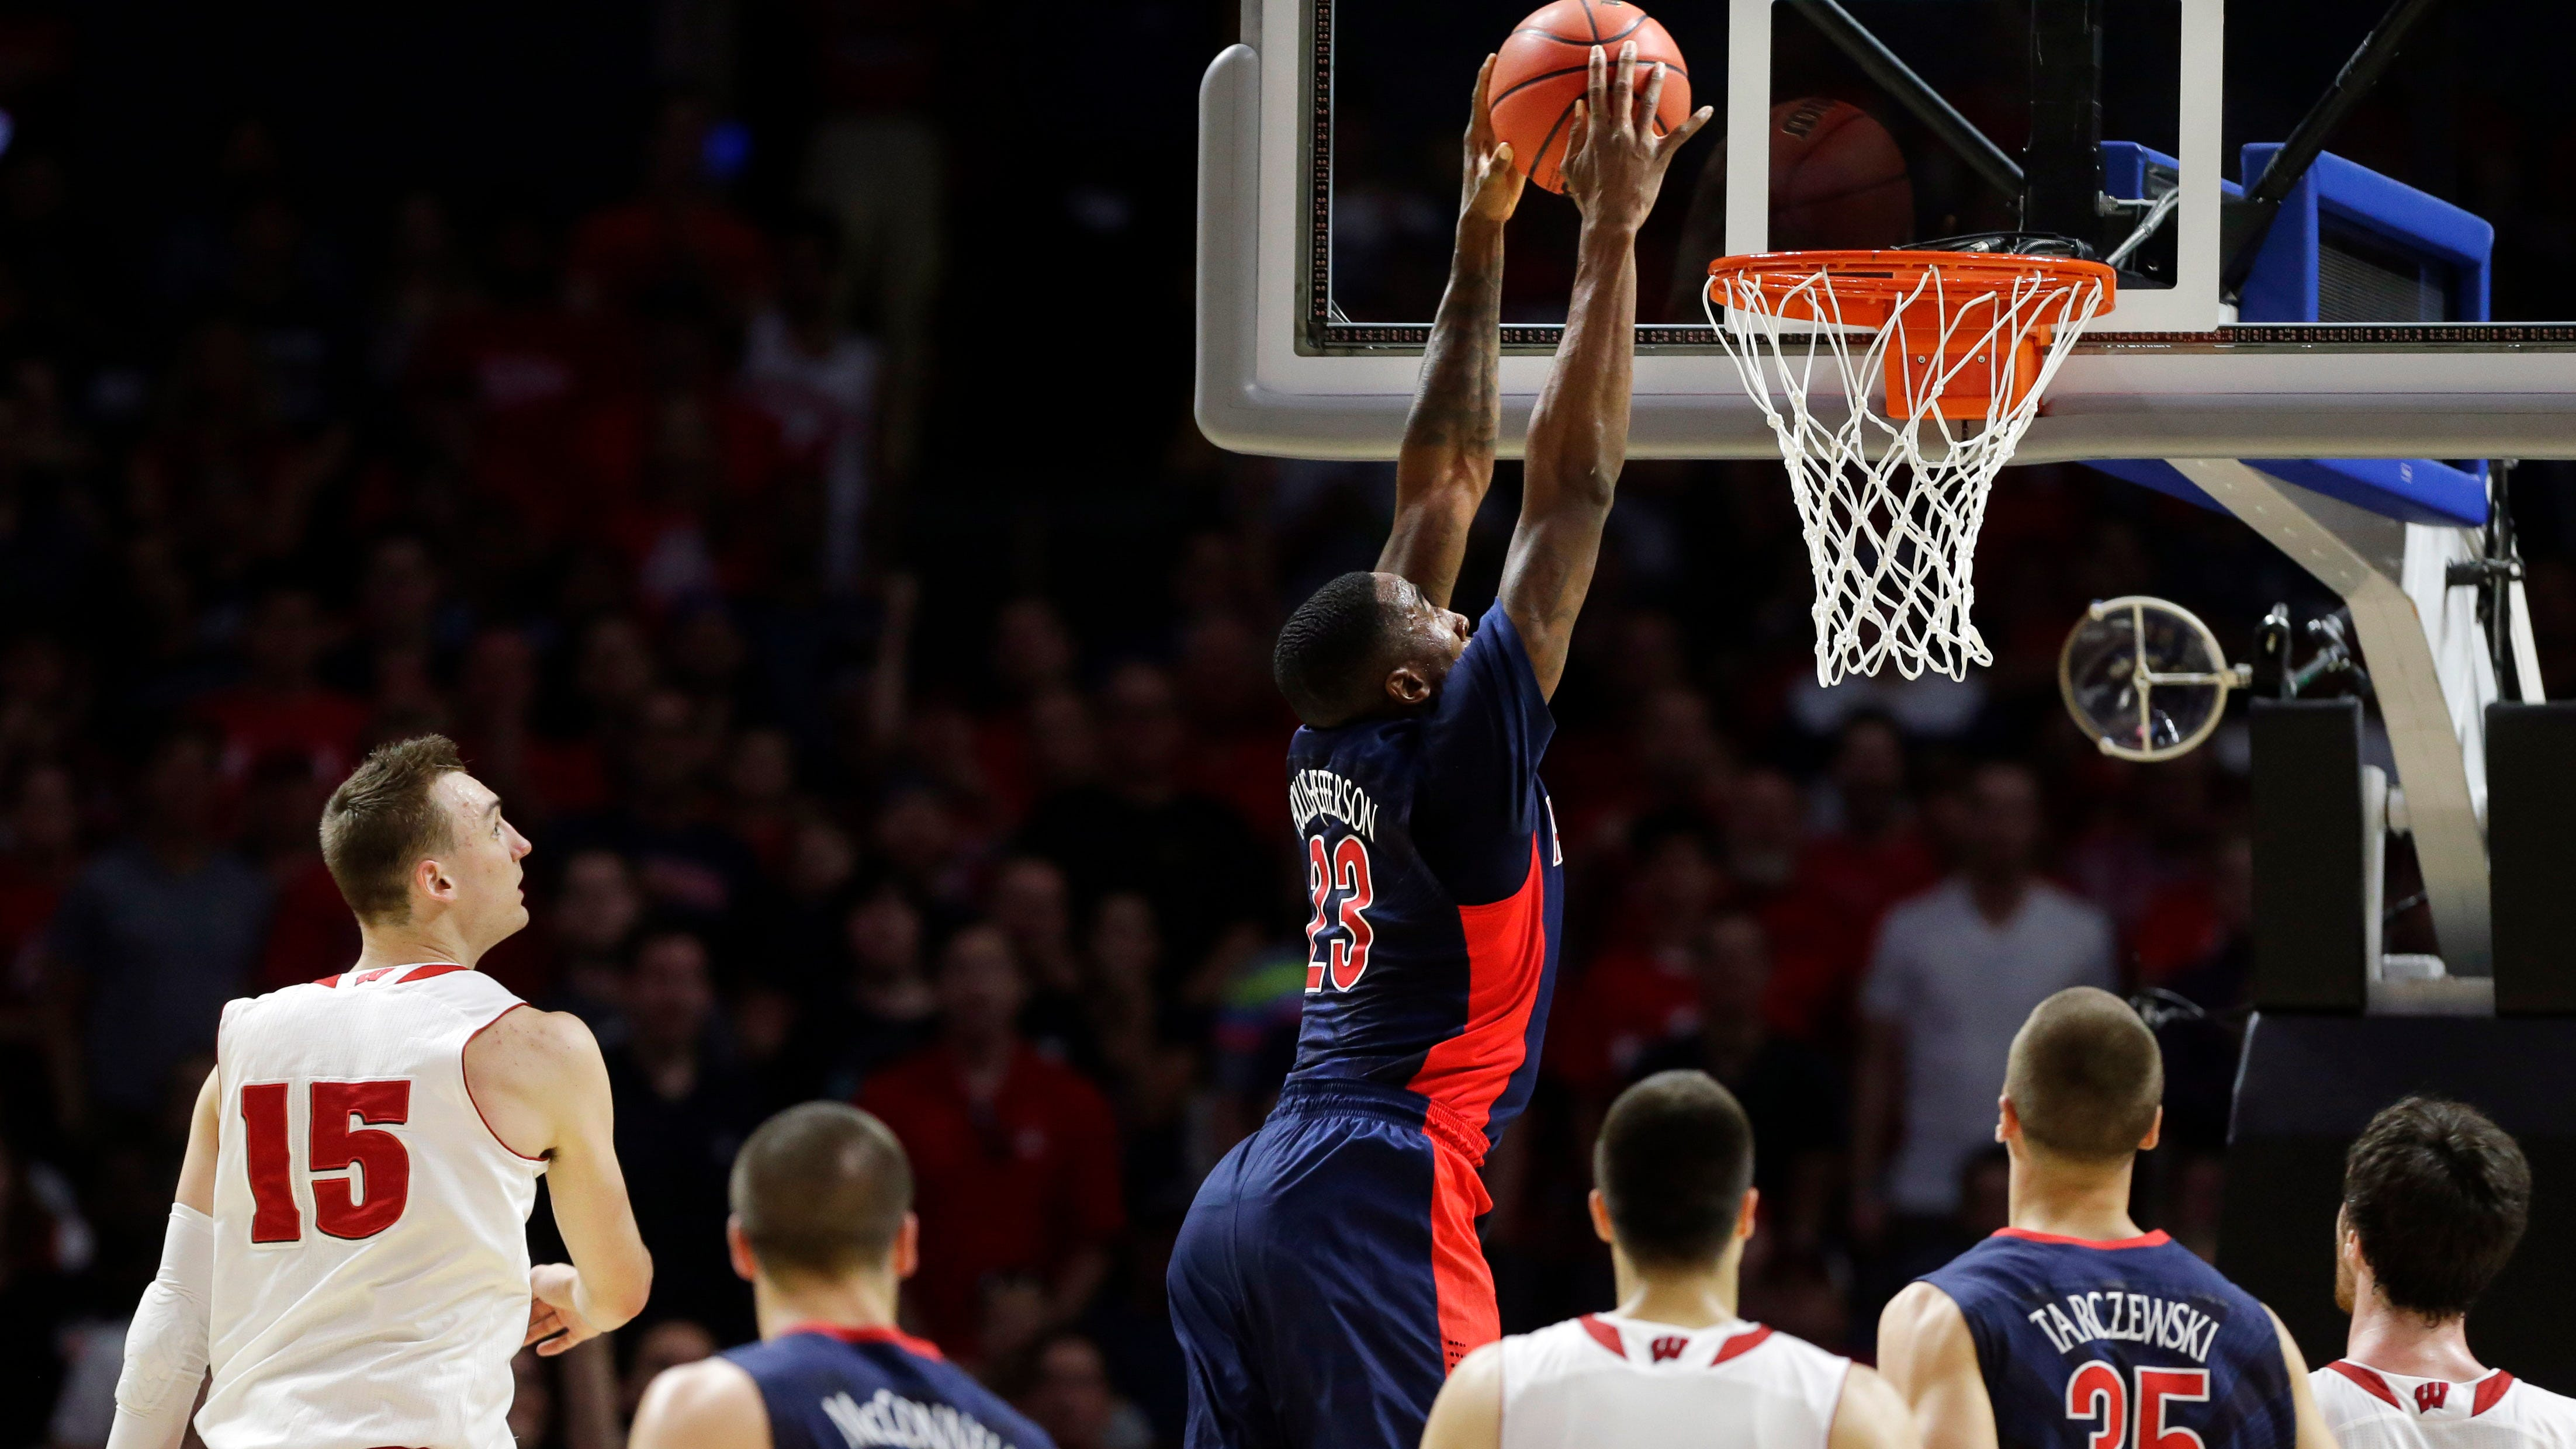 How an Arizona Wildcats basketball fan's extreme effort to watch game in the Dells led to identity theft charges